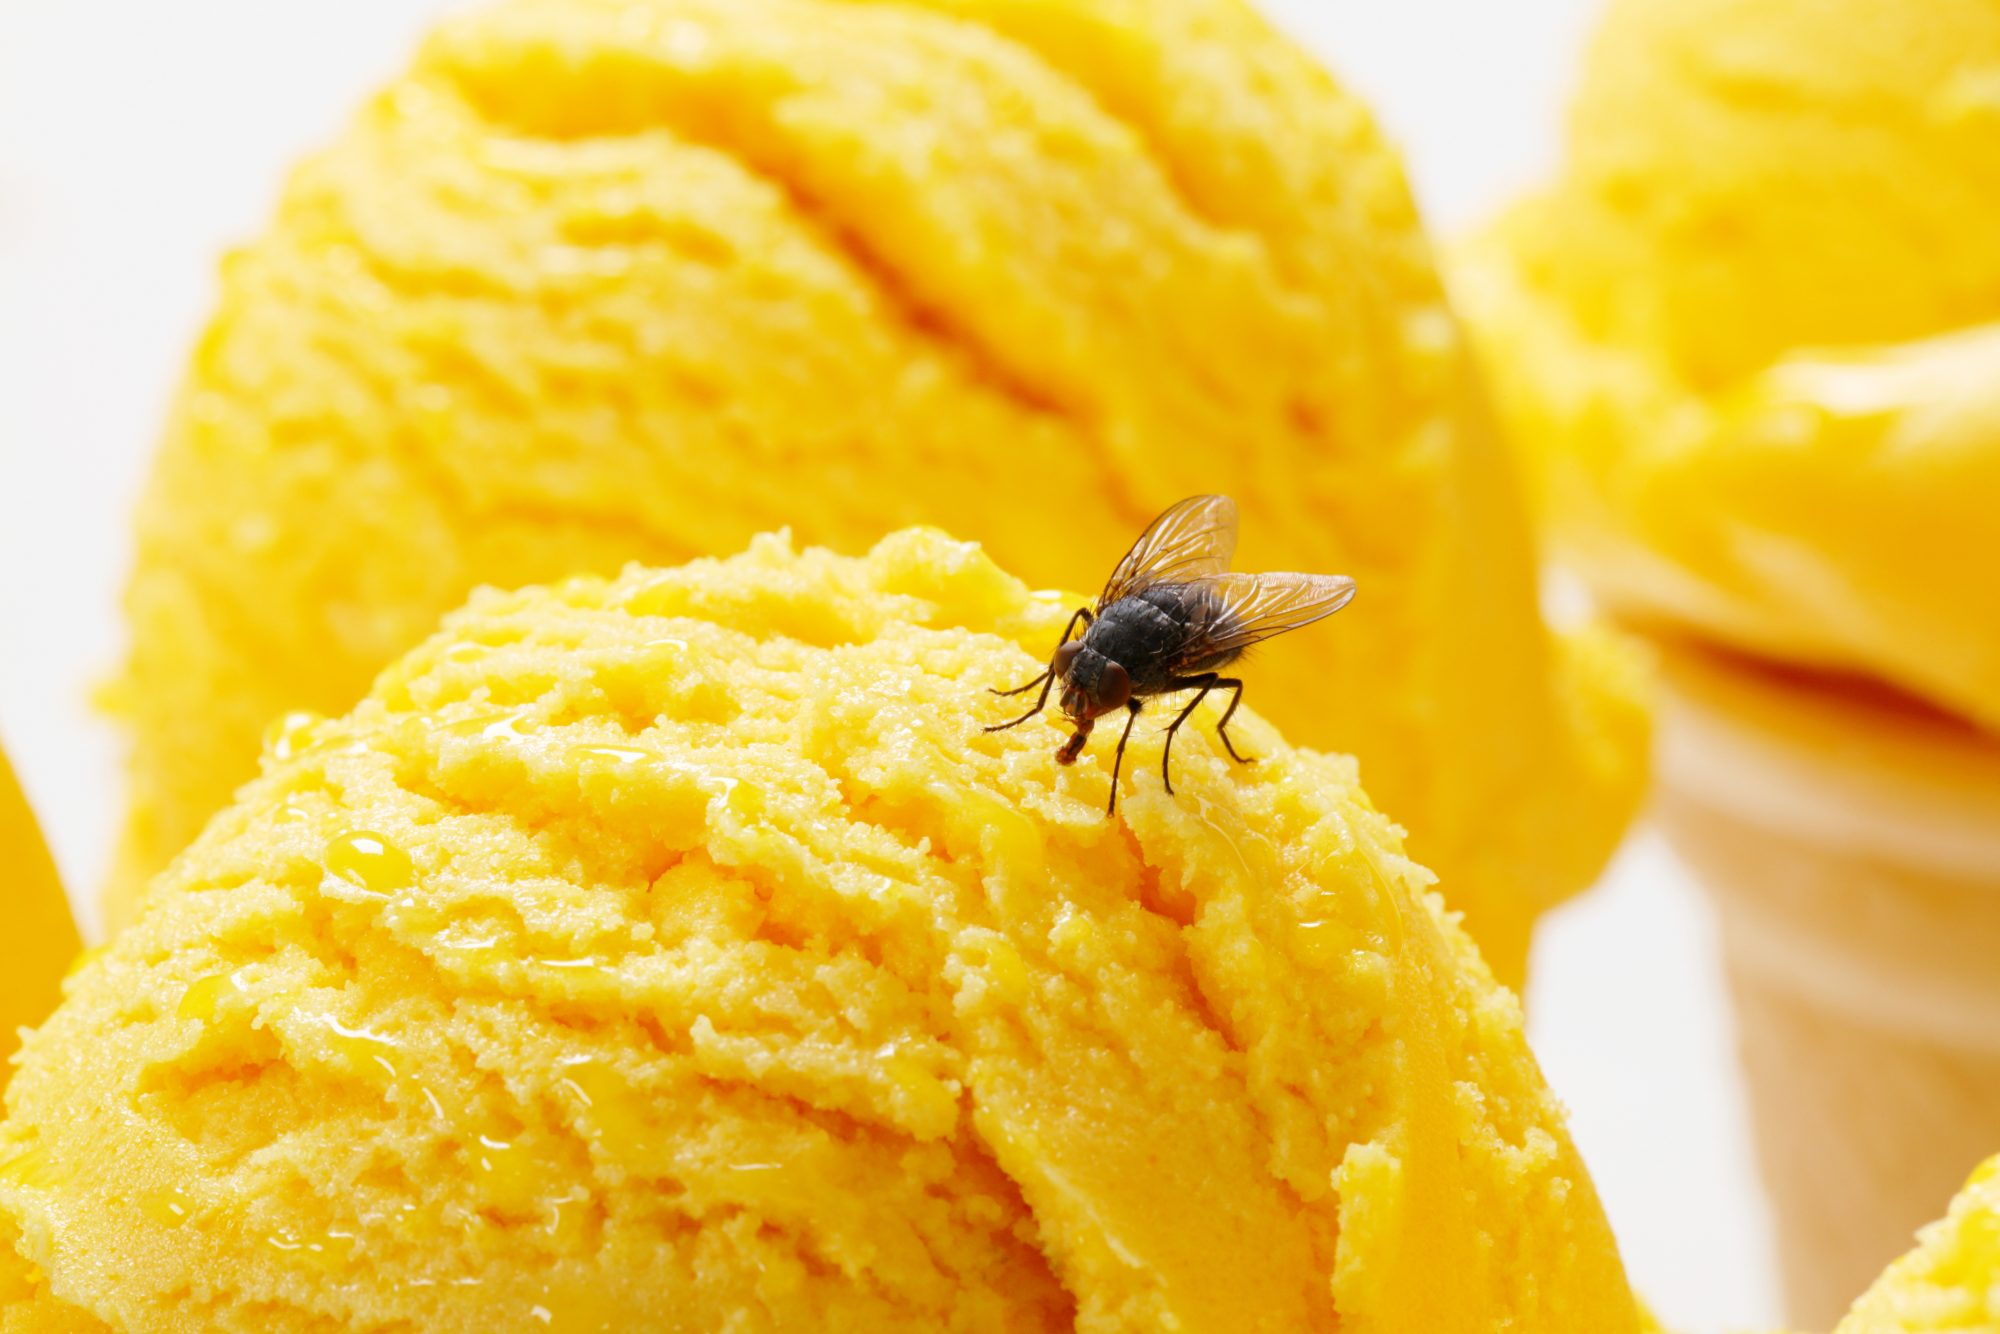 Fly on Ice Cream